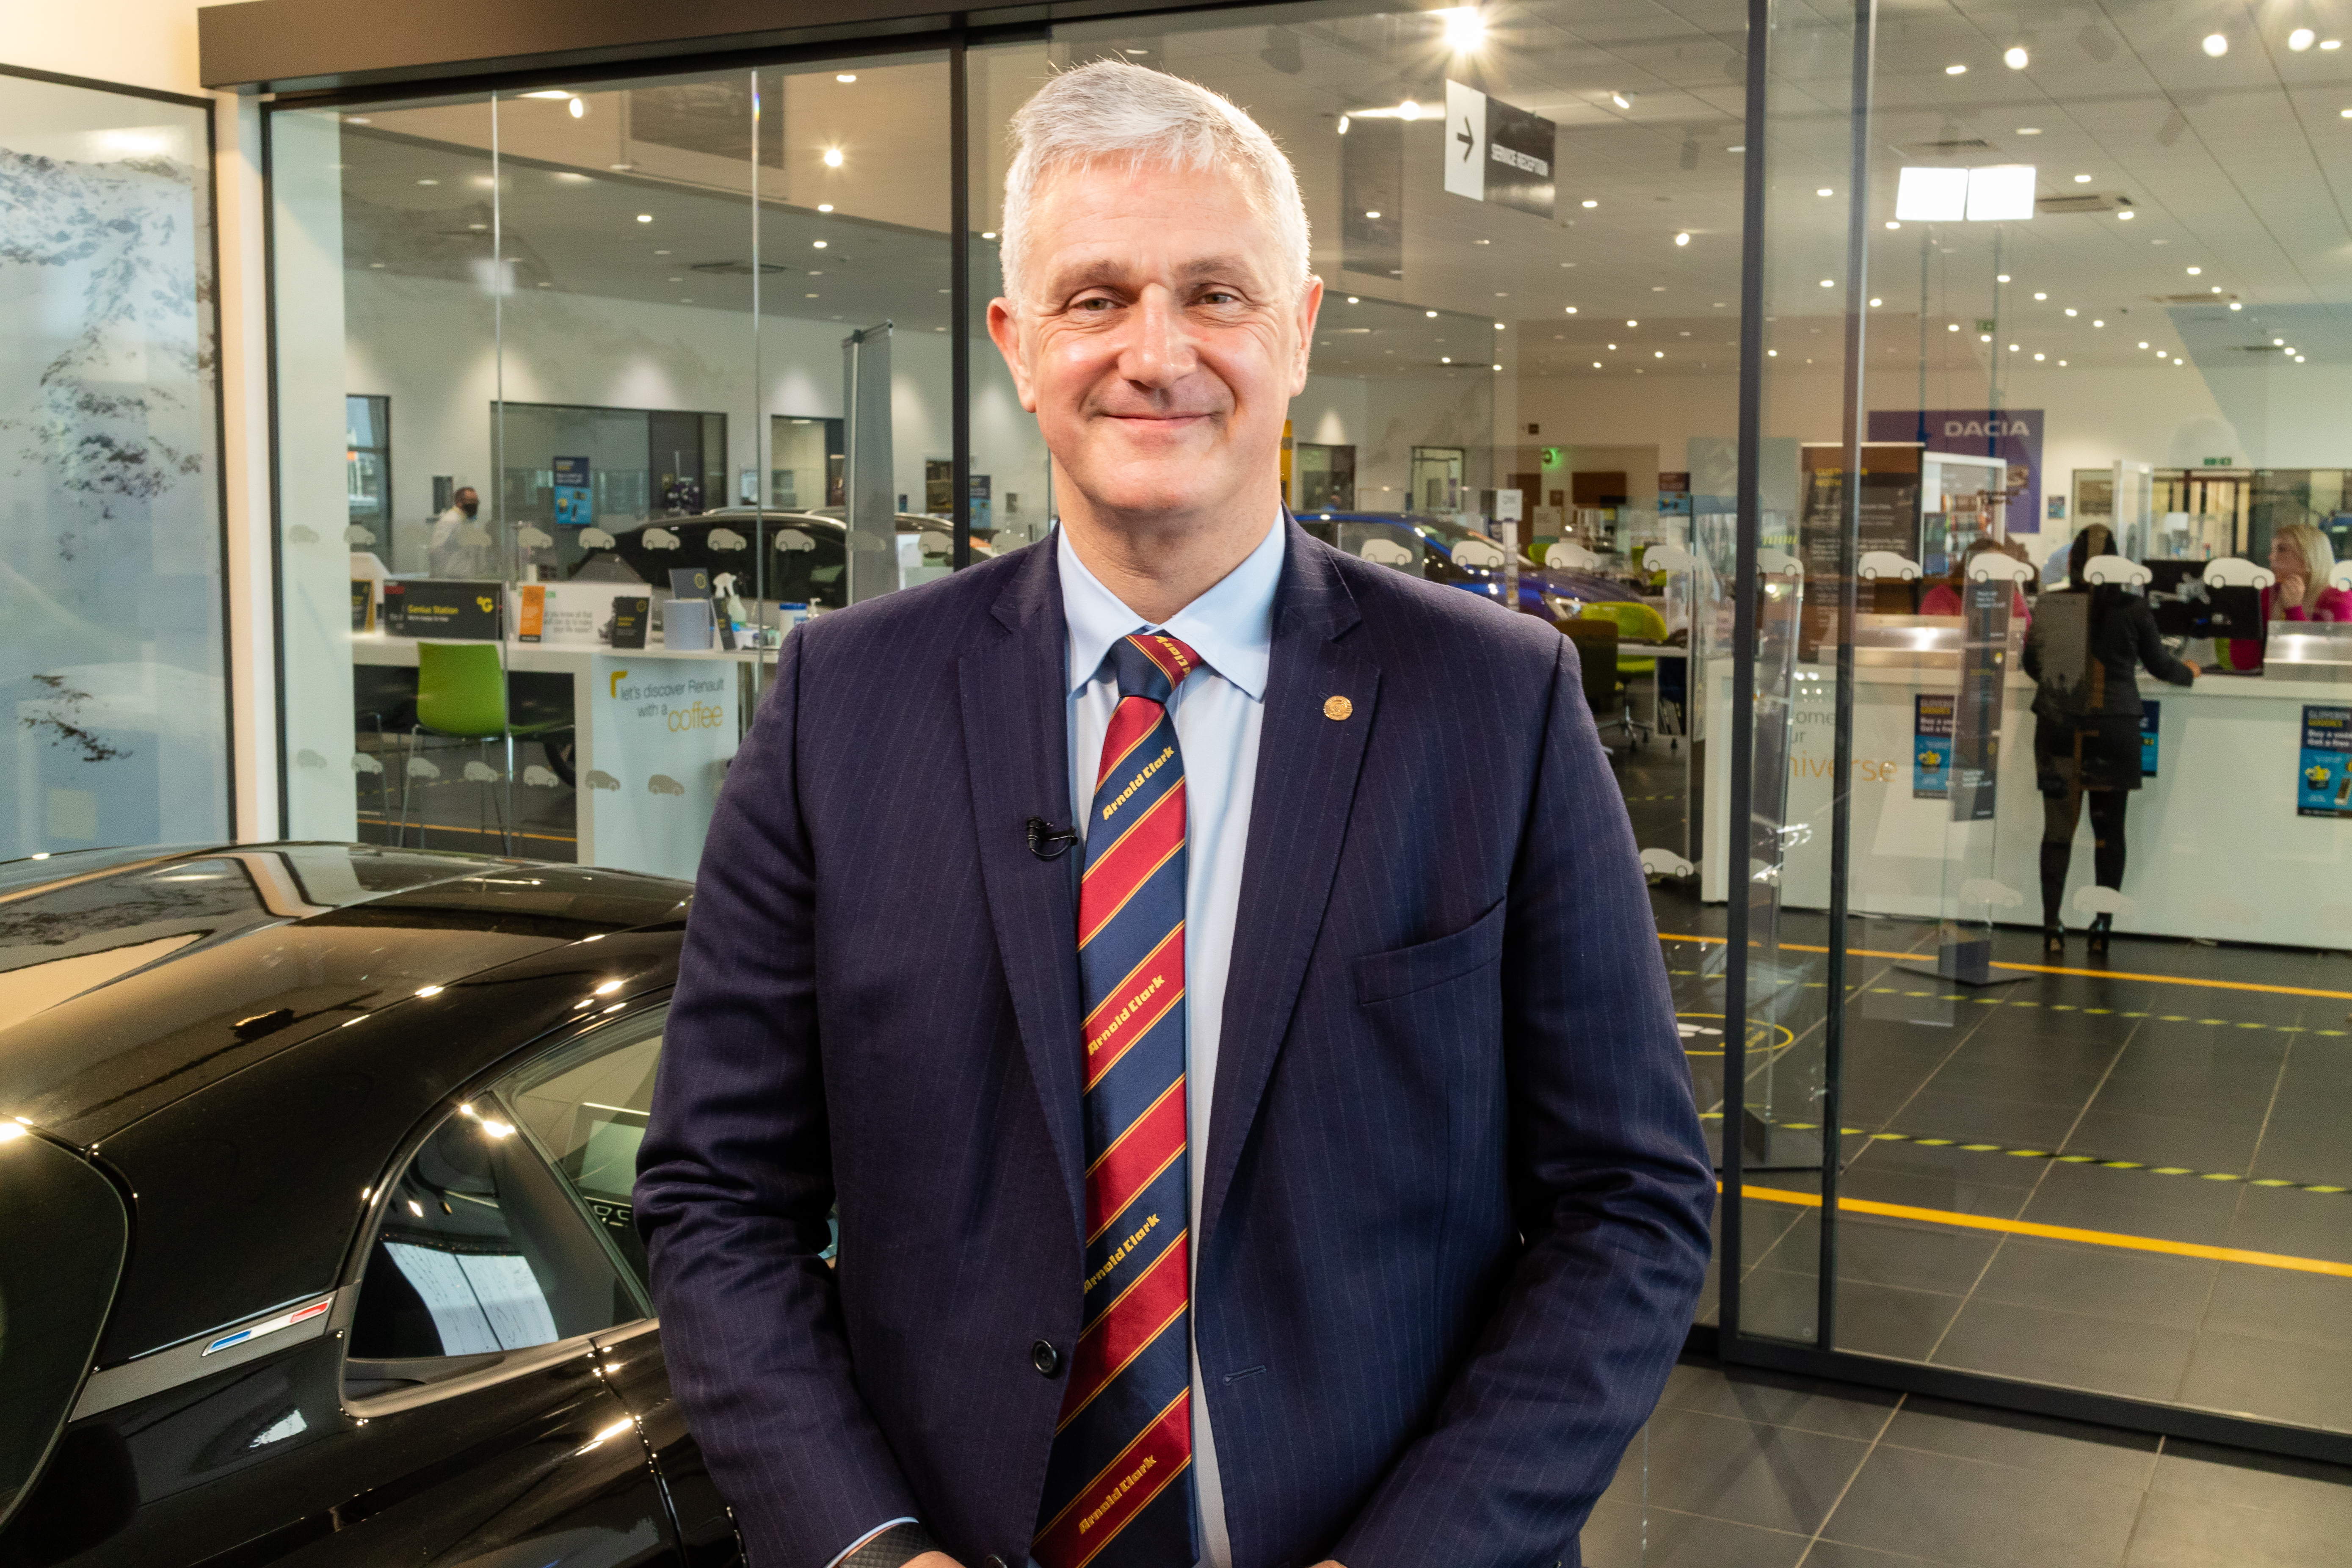 Eddie Hawthorne discusses the future of petrol, diesel and electric cars in light of the 2030 petrol and diesel car ban.